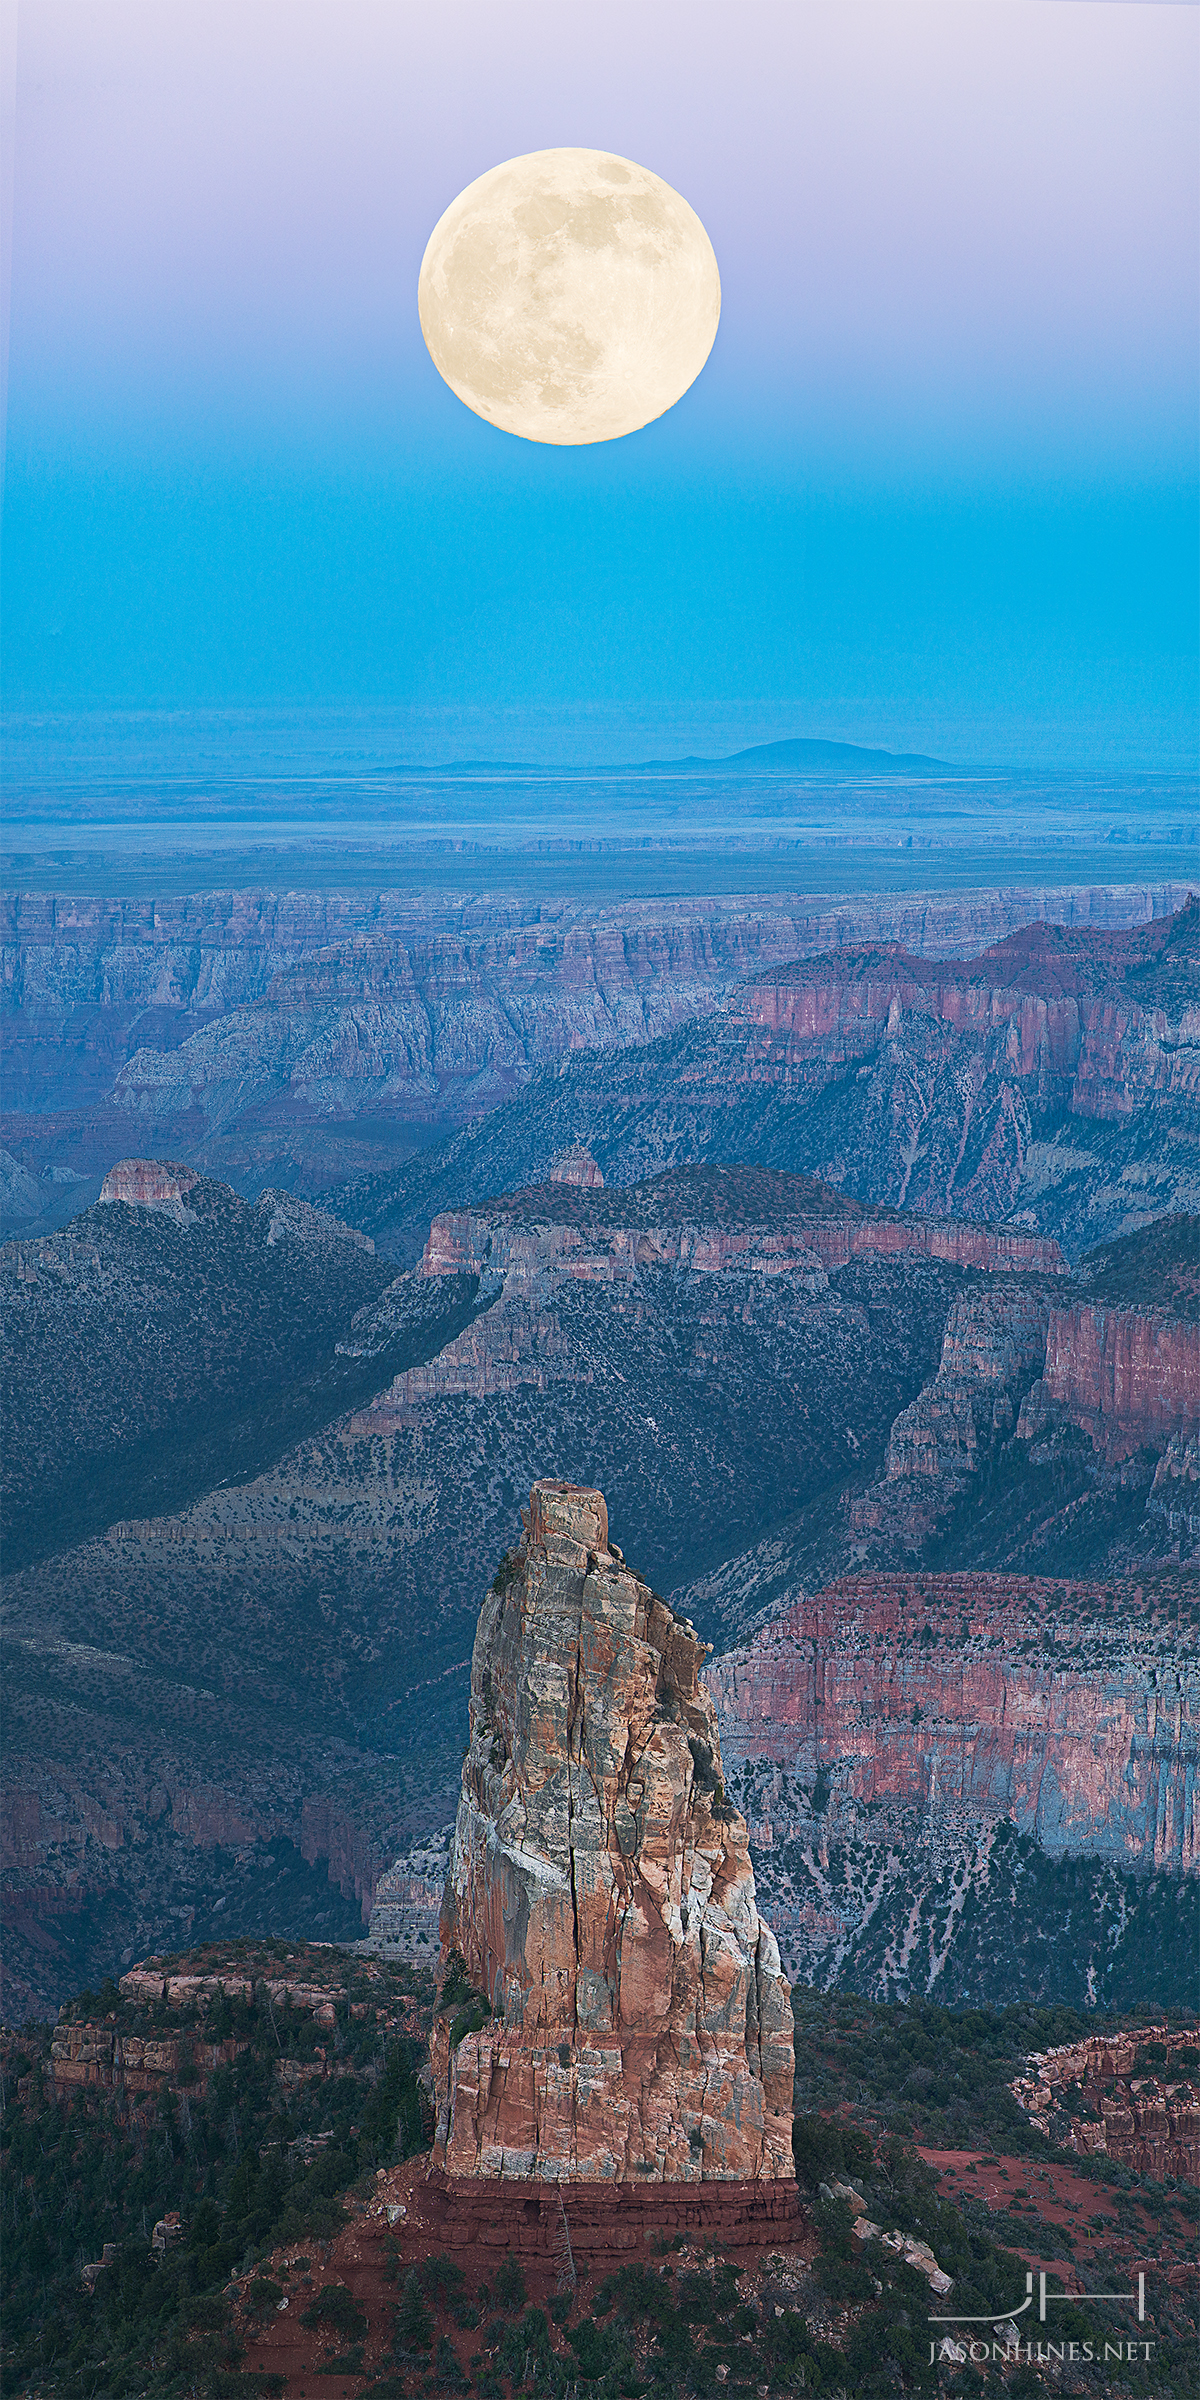 Wow! Stargazer Captures Supermoon Over Grand Canyon (Photo)